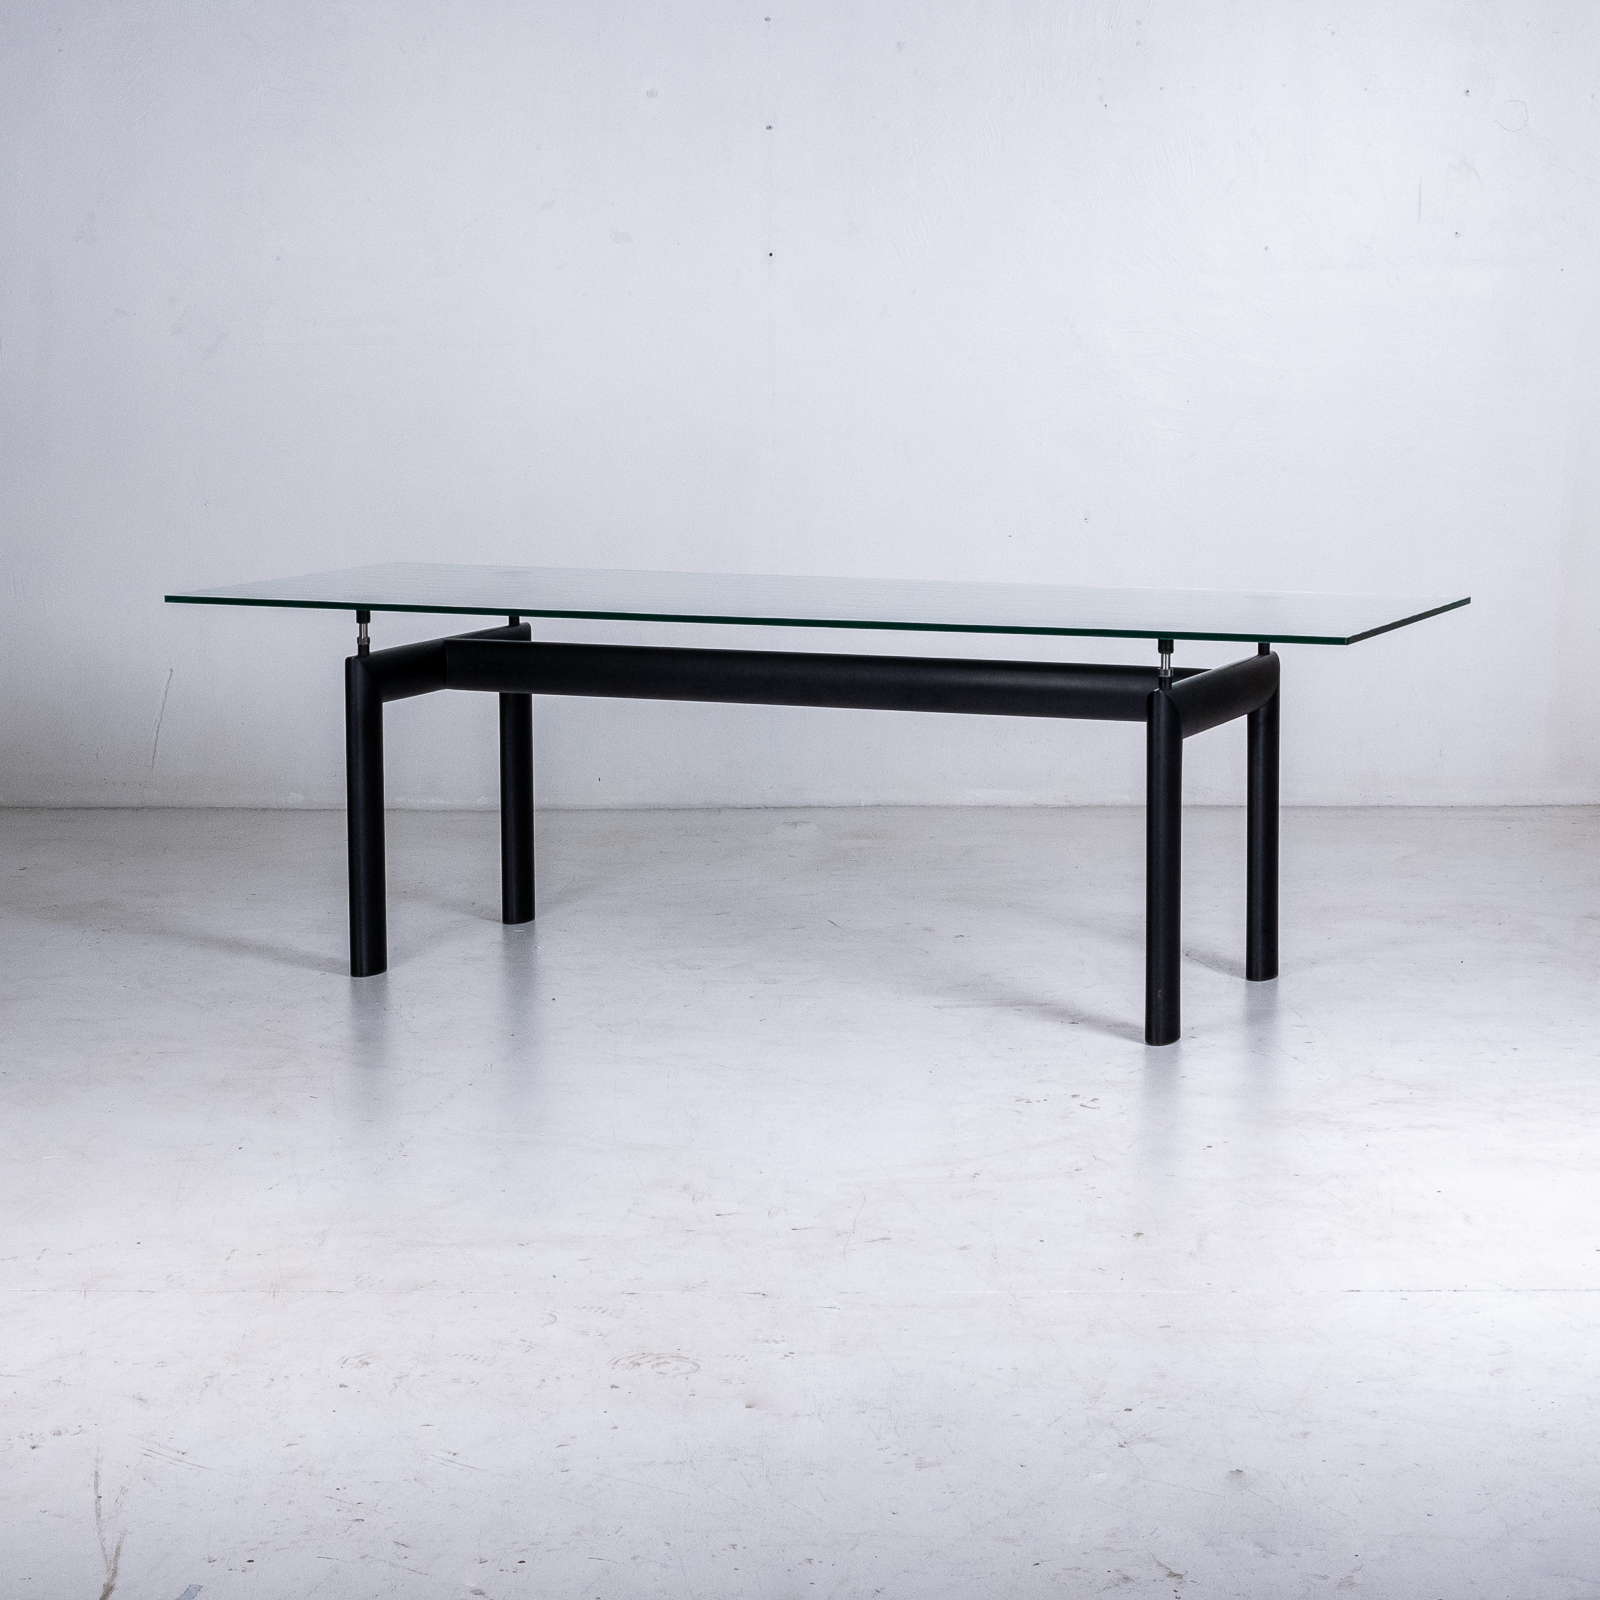 Model Lc6 Dining Table By Le Corbusier For Cassina, 1928 00014